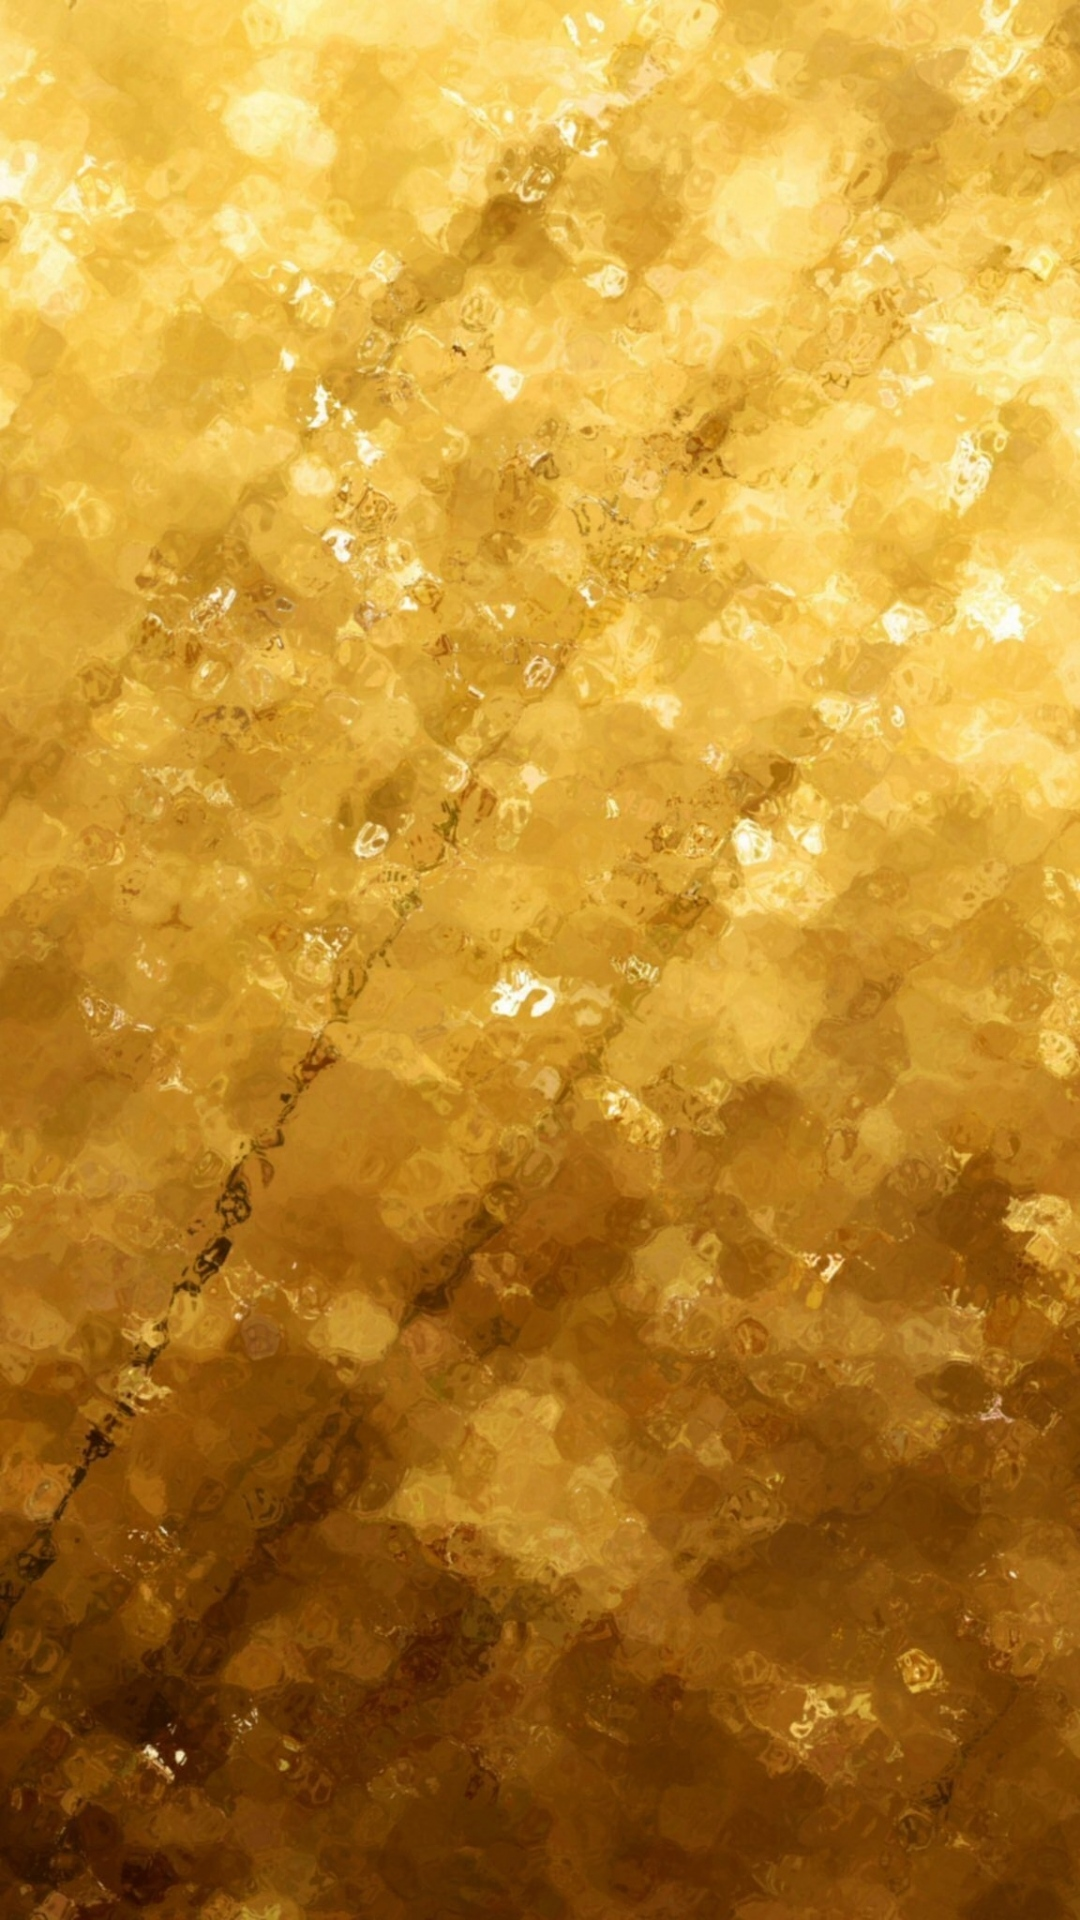 Wallpaper Warna Gold